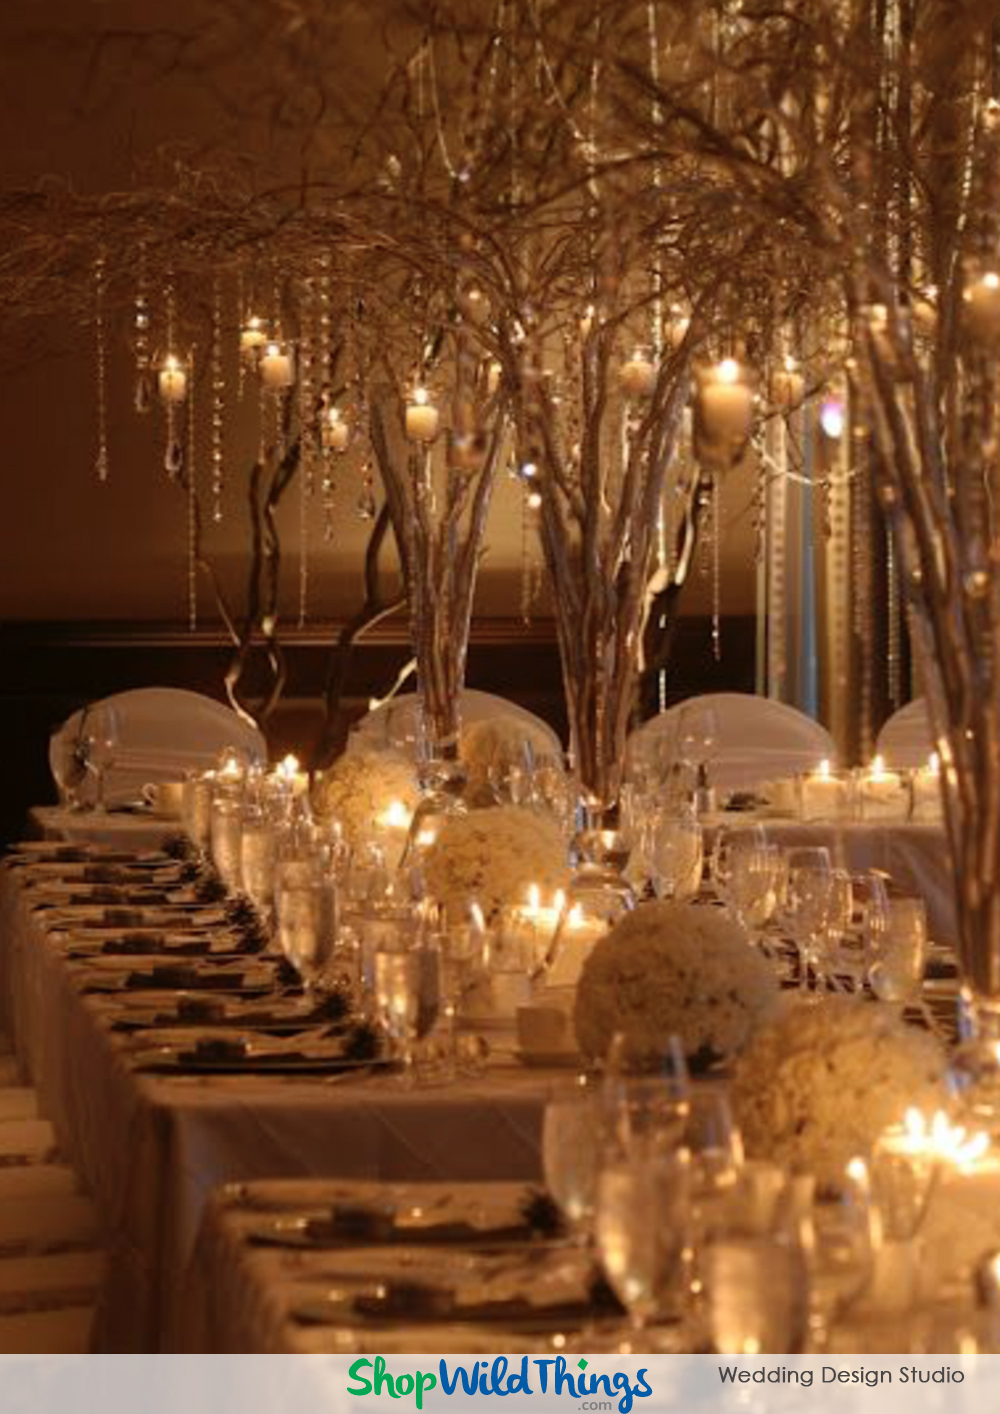 BLOG! Wedding Centerpieces : Vases, Floral Sprays, Candles